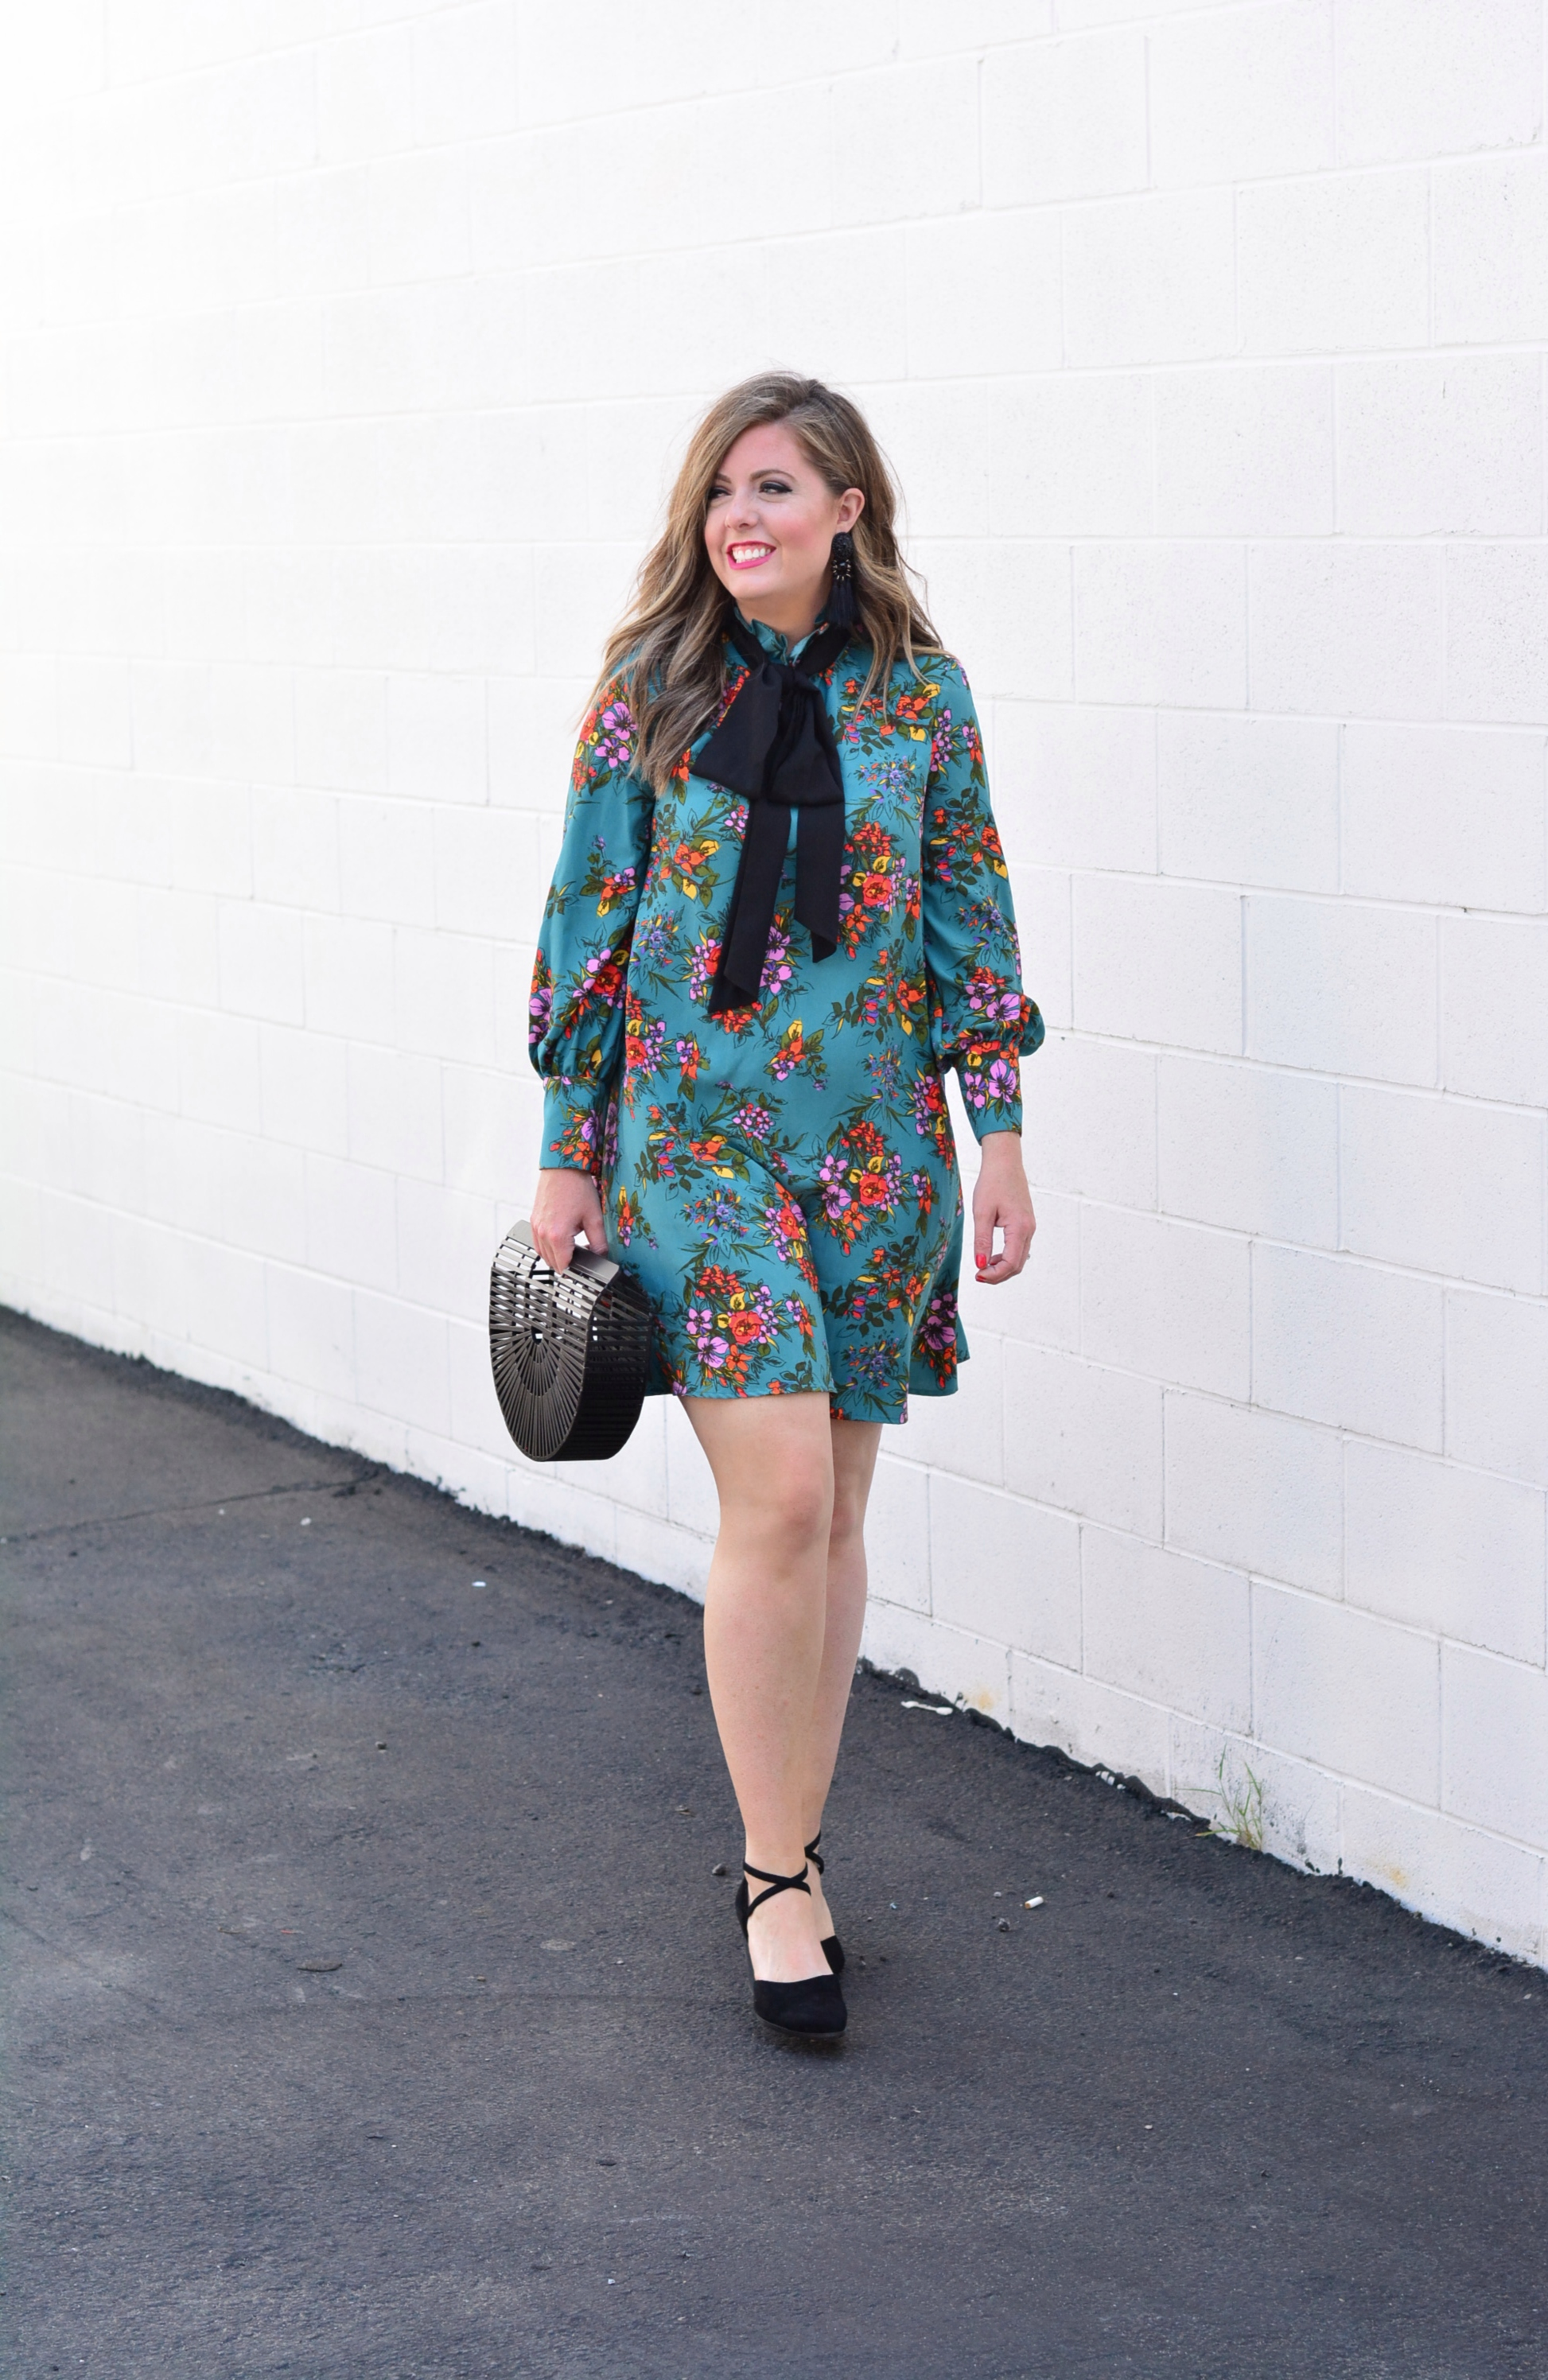 Floral dress outfit for fall